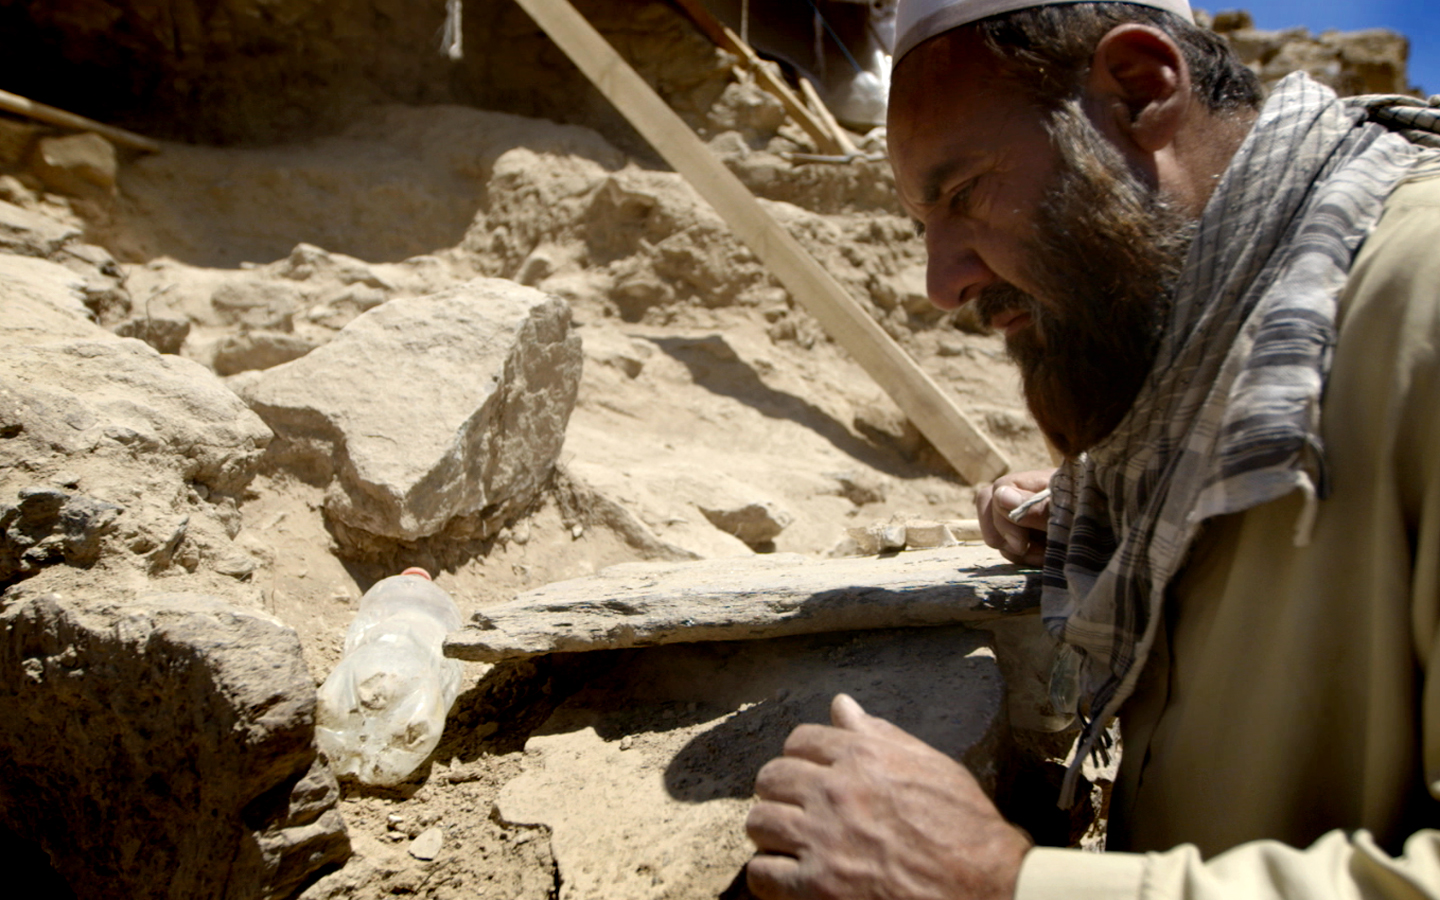 One of the Mes Aynak archaeologists inspecting a newly-discovered structure.